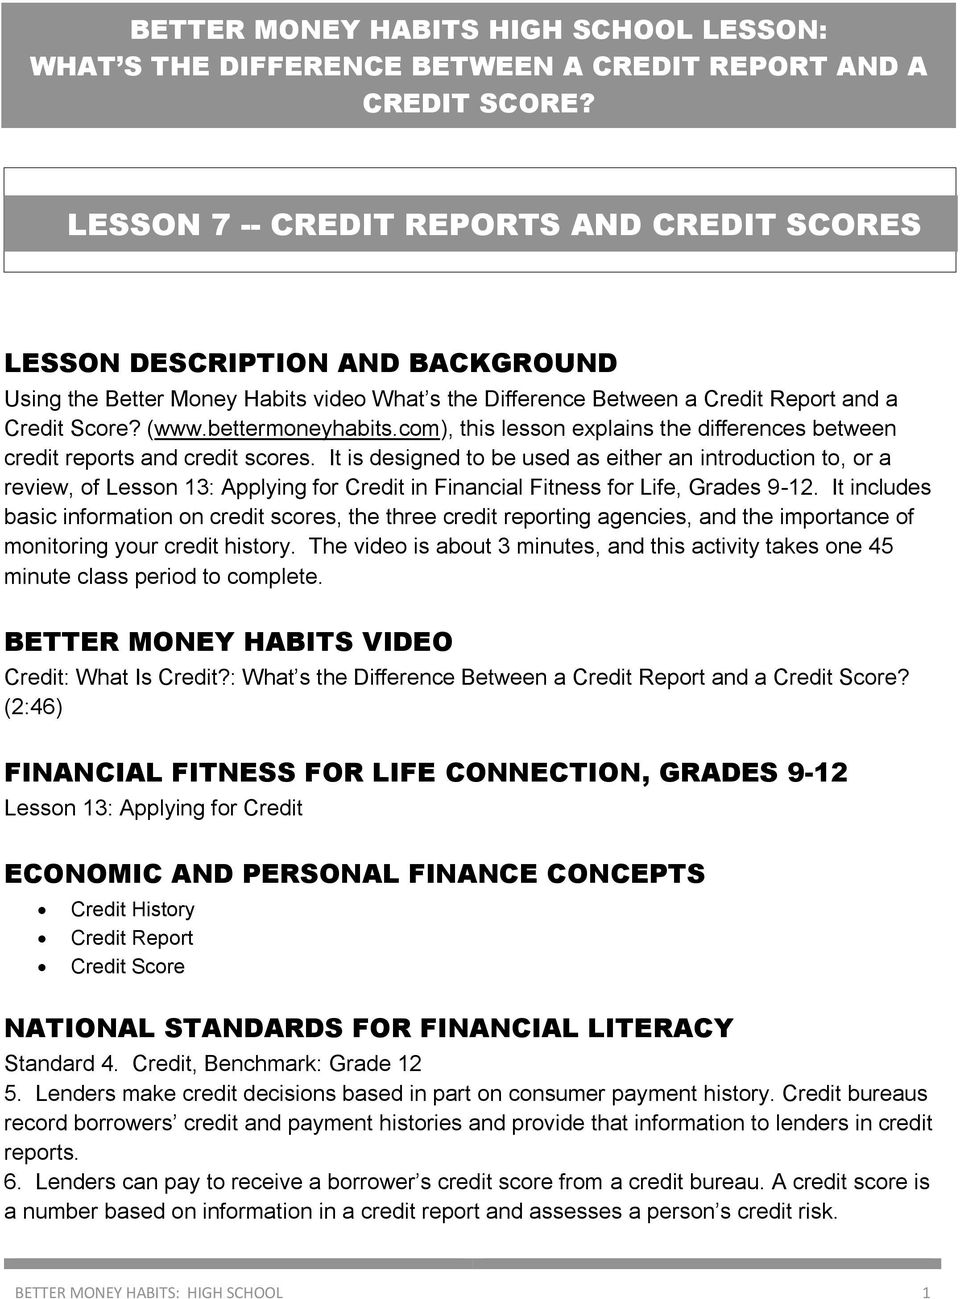 It is designed to be used as either an introduction to, or a review, of Lesson 13: Applying for Credit in Financial Fitness for Life, Grades 9-12.